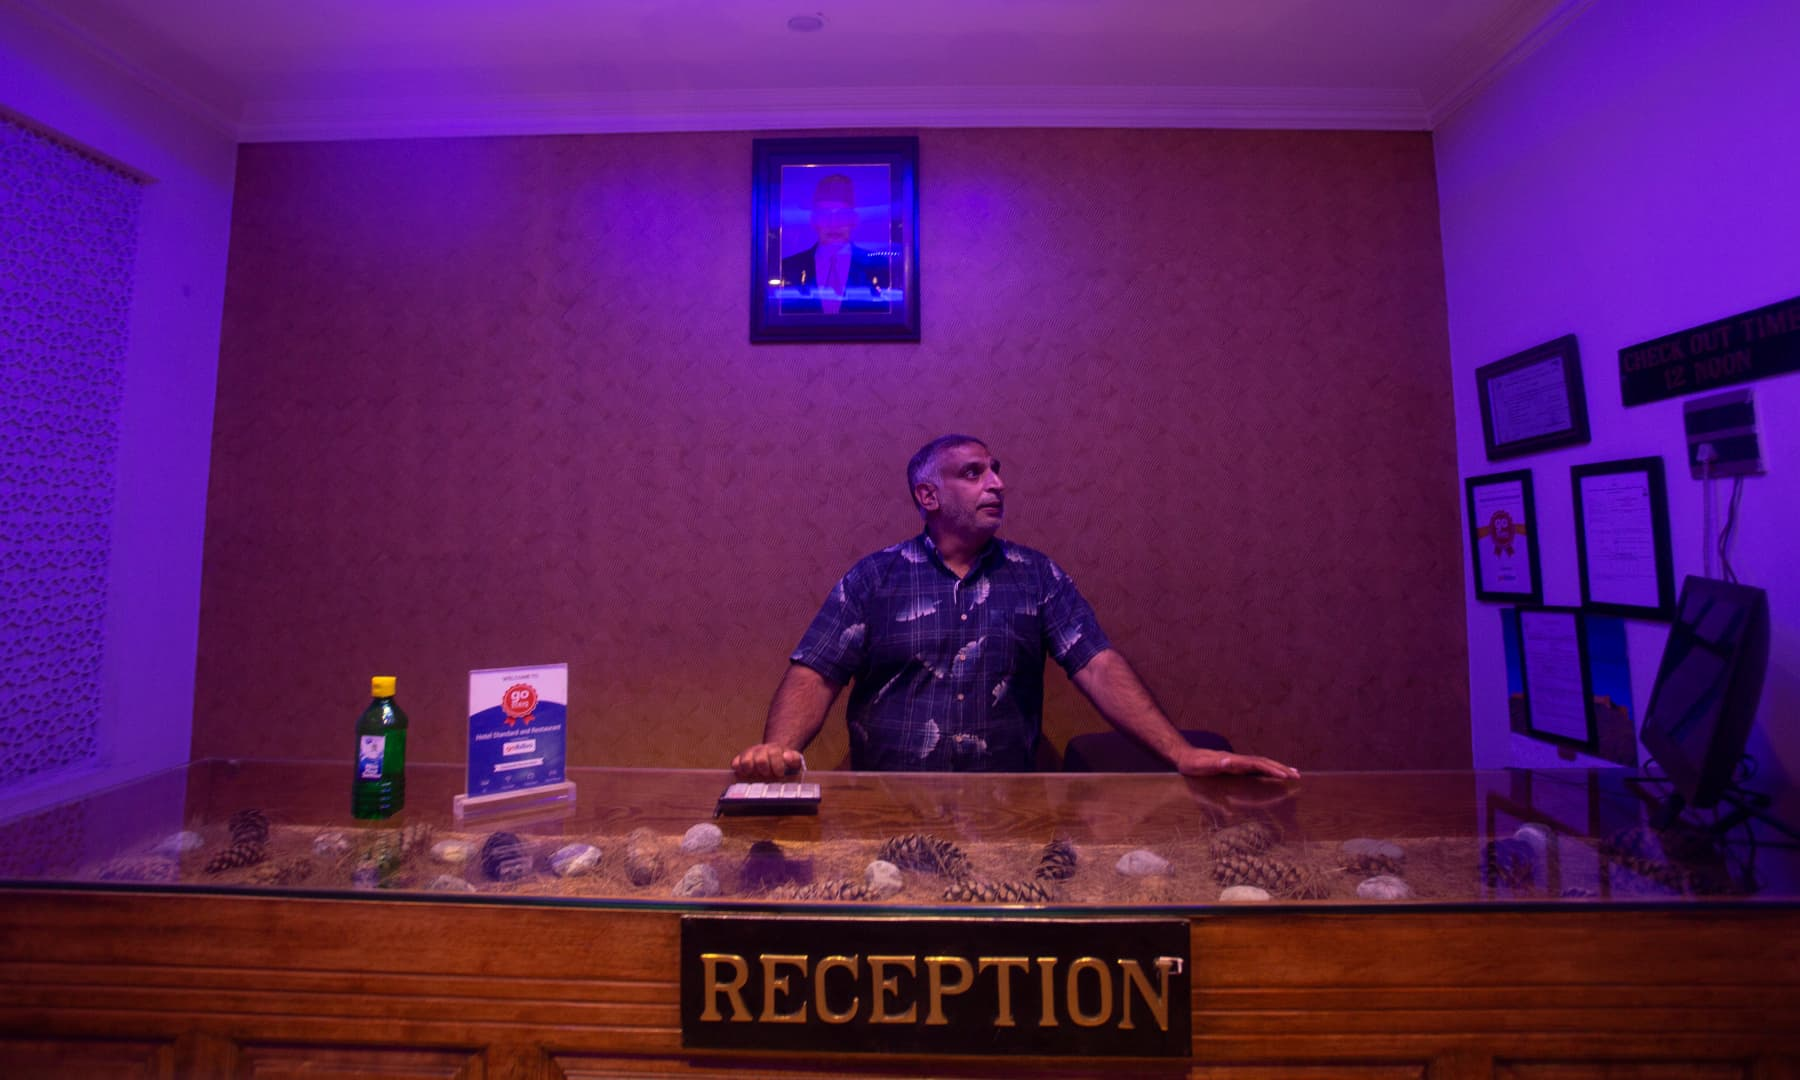 Kashmiri hotel manager Khurshid Ahmed stands at the reception counter of Hotel Standard during lockdown to stop the spread of the coronavirus in Srinagar, July 15, 2020. — AP